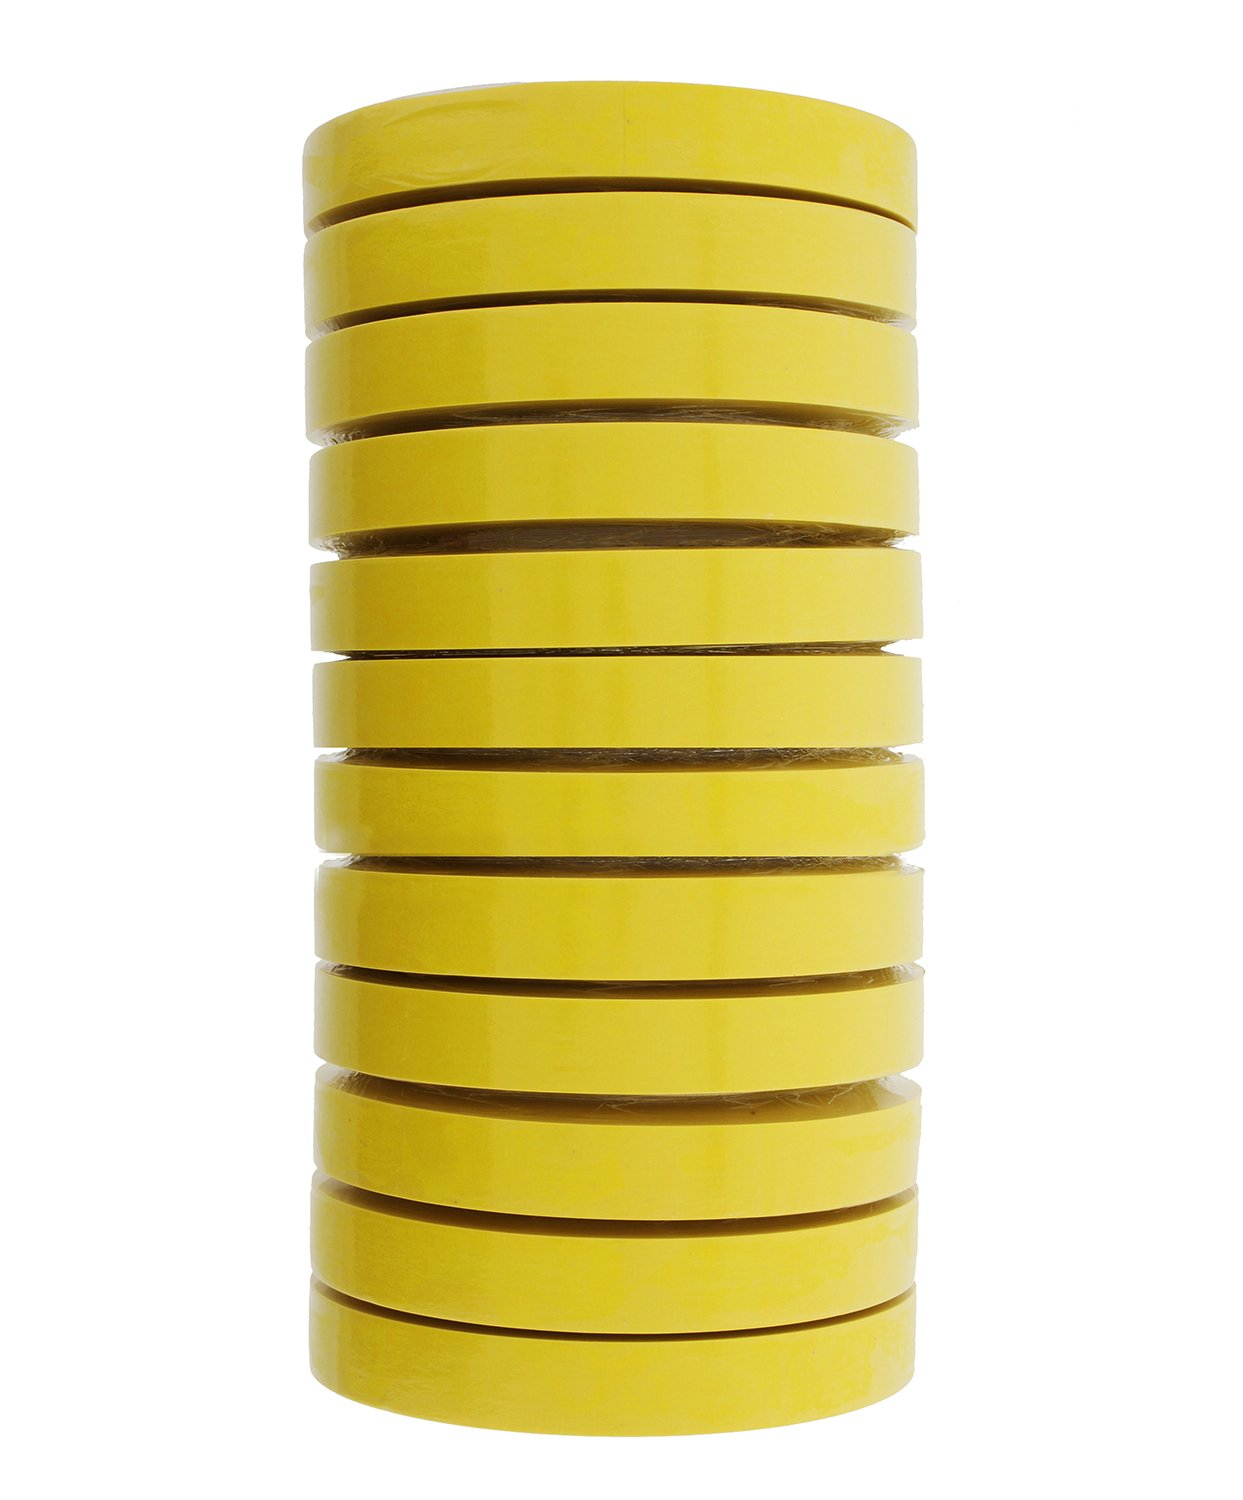 3M 06652 Automotive Refinish Masking Tape, 250 Degree F Performance Temperature, 28 lbsin Tensile Strength, 55m Length x 18mm Width, Yellow (Case of 12 Rolls)